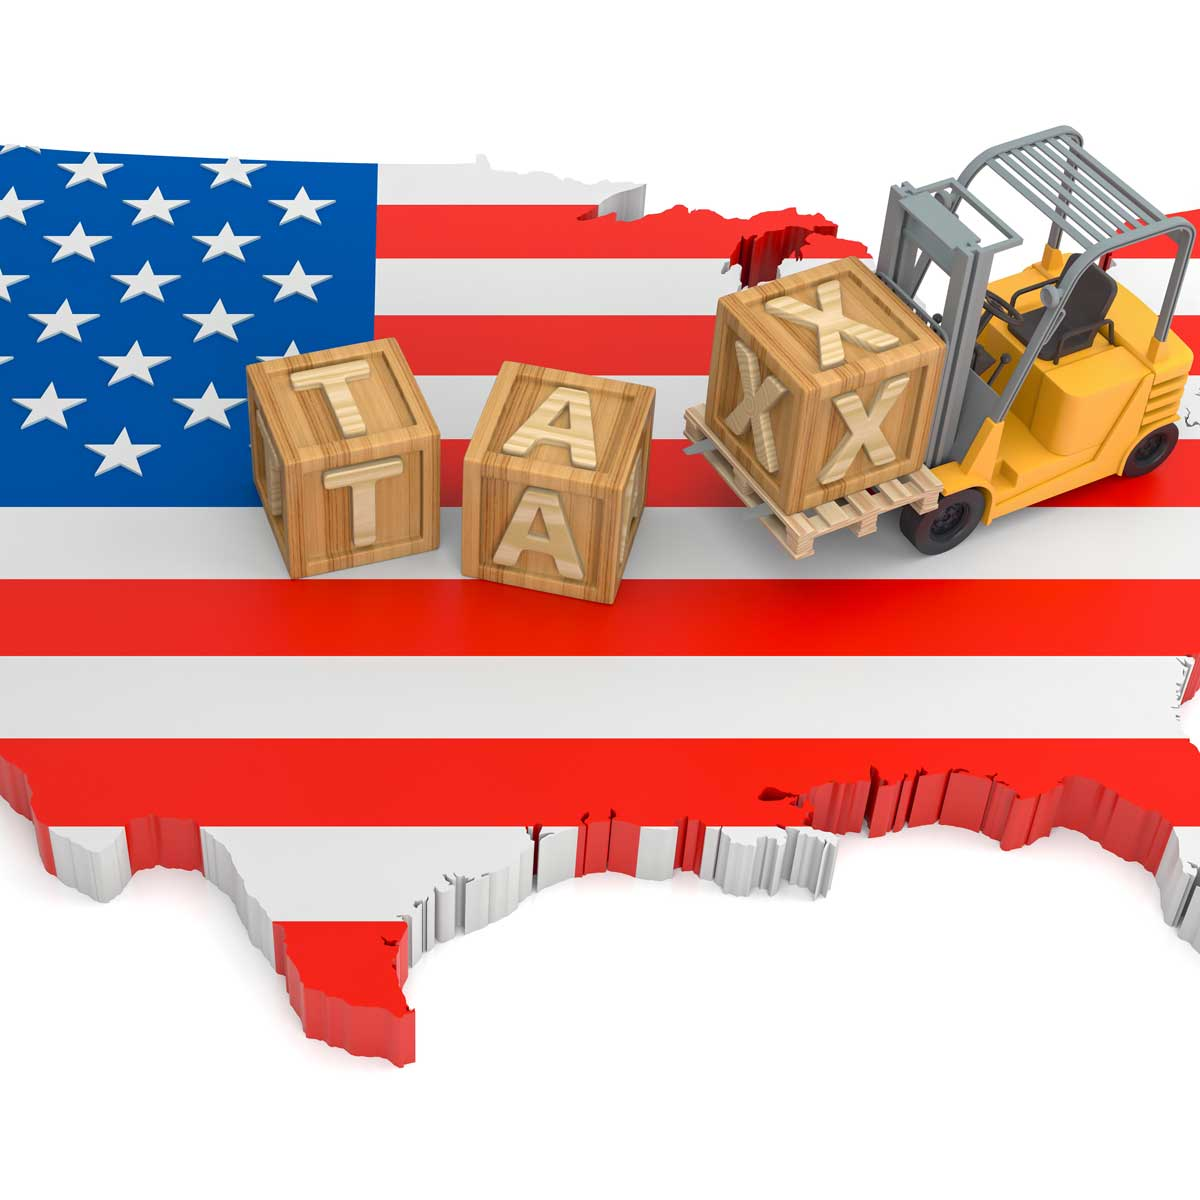 the united states of america with the flag covering the country. block letters spell out tax and a construction vehicle is picking up the block letters